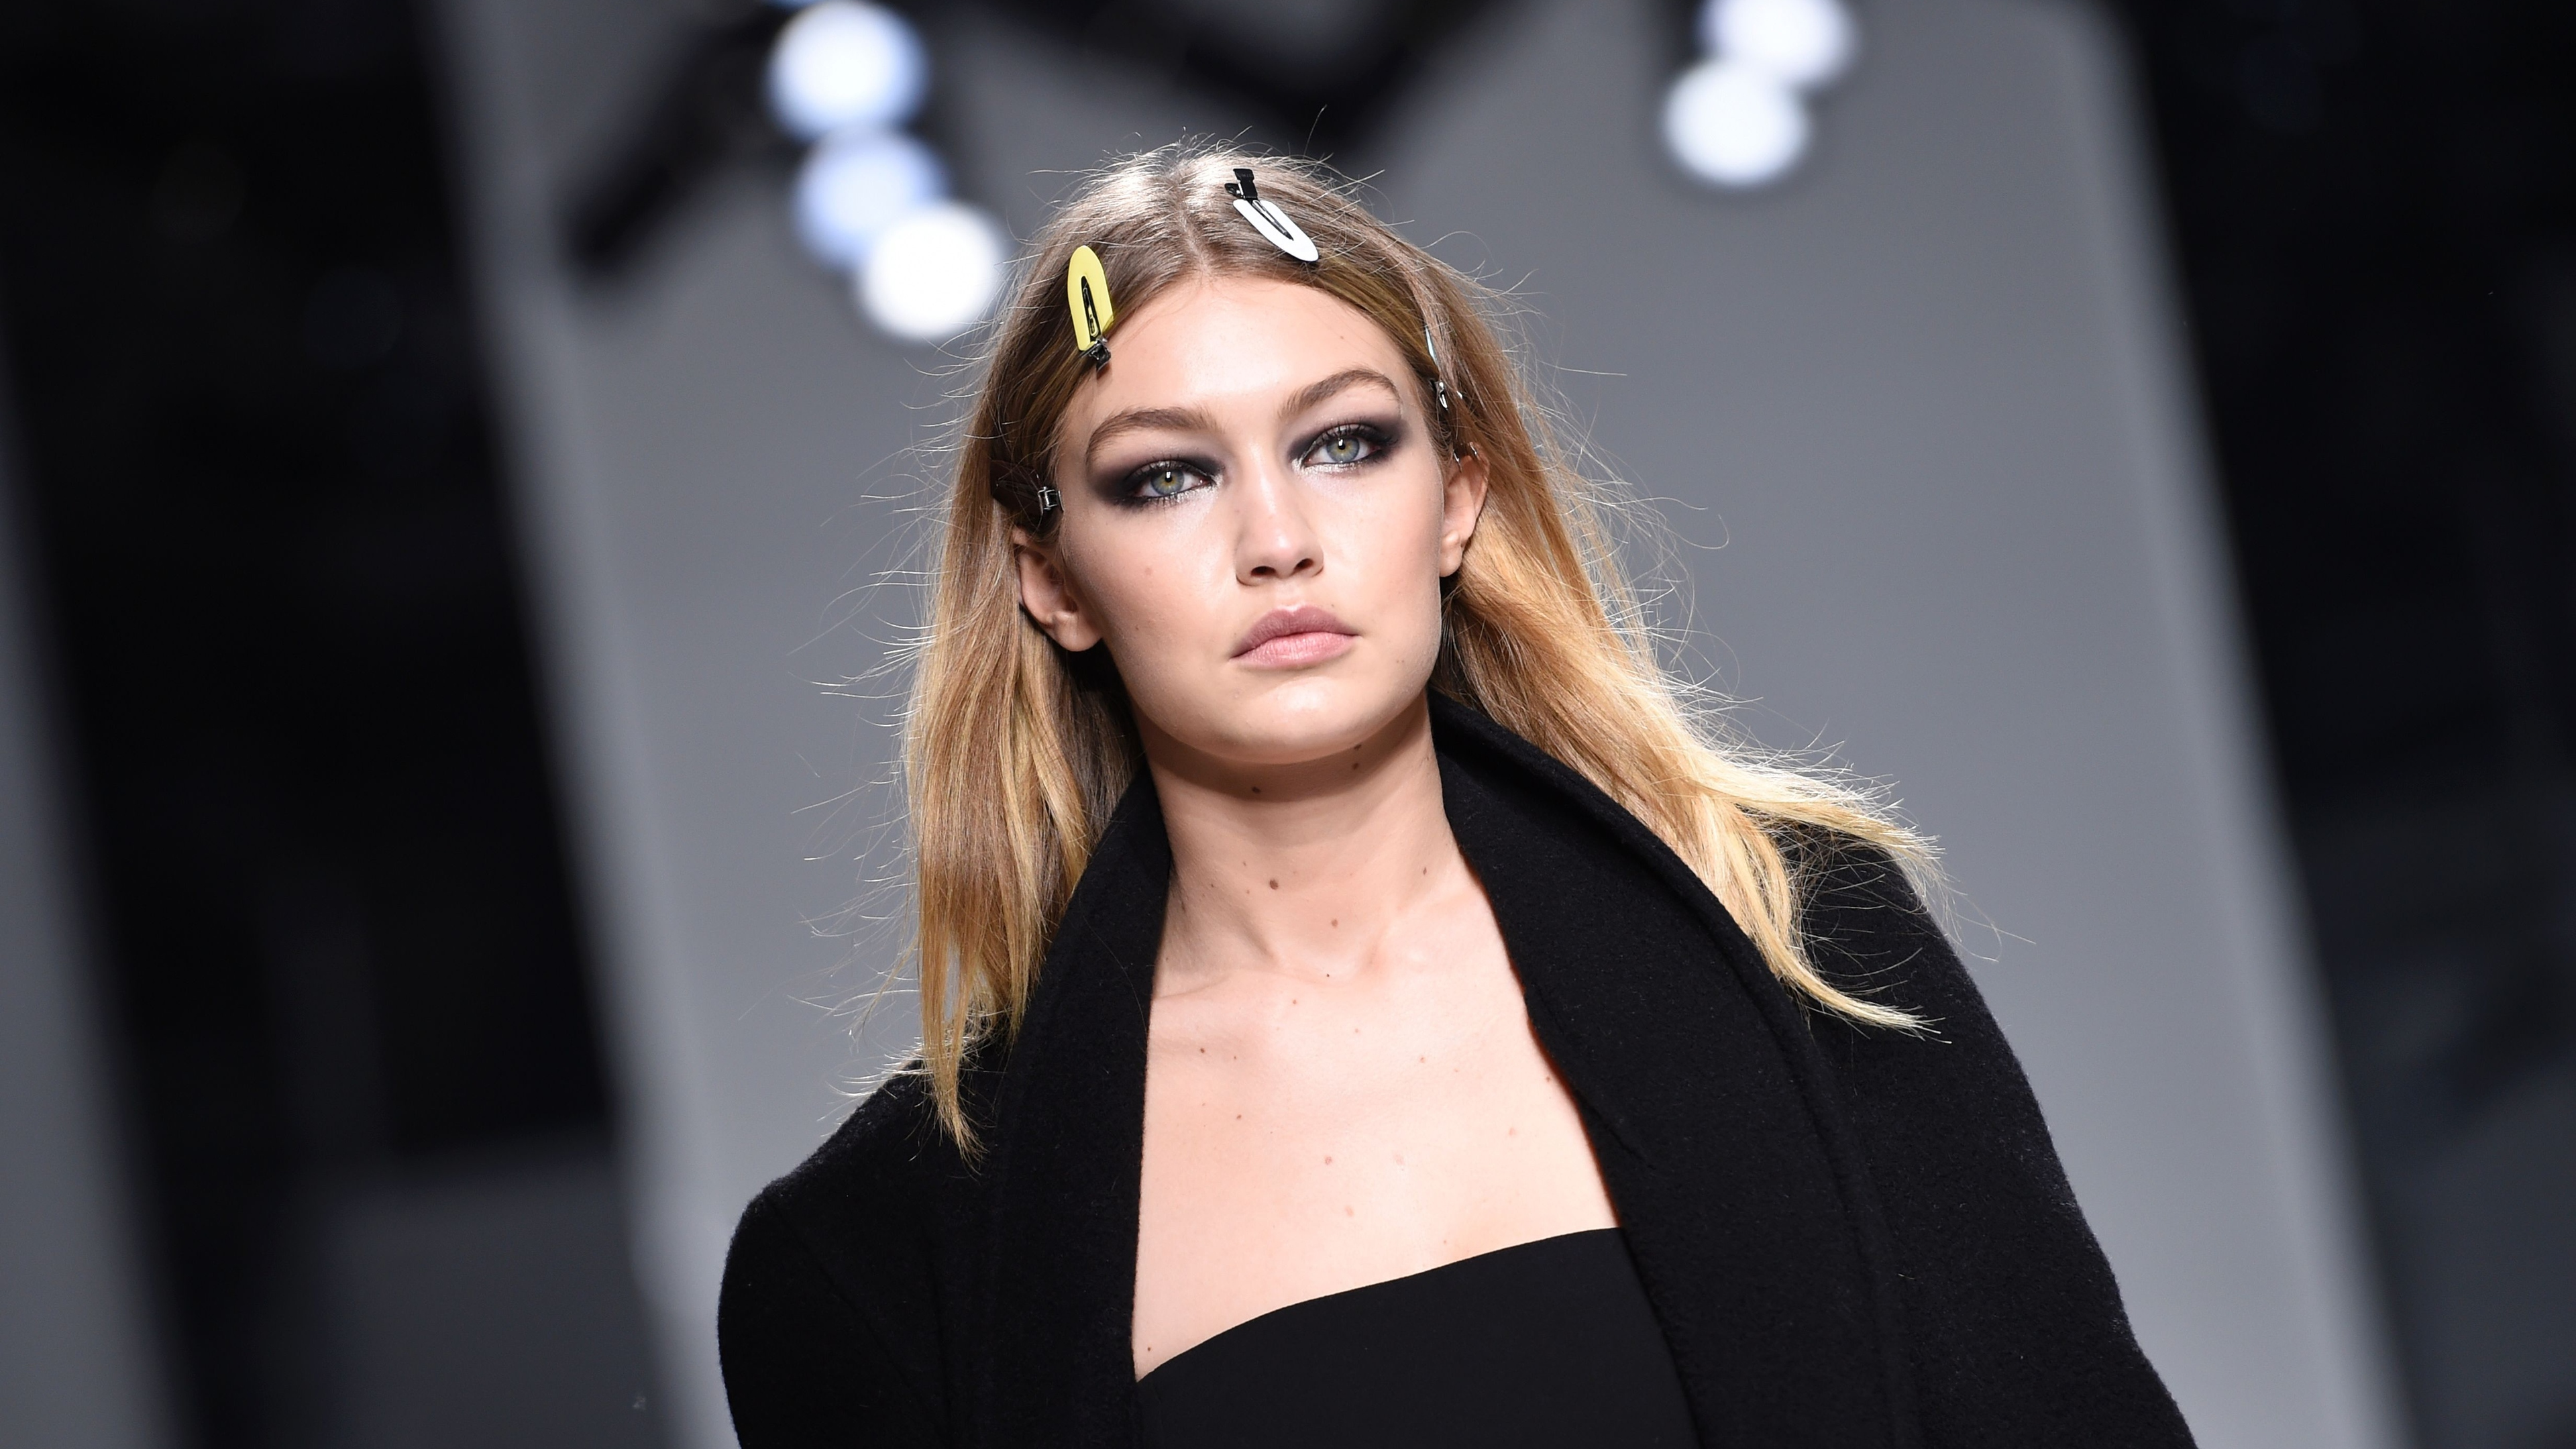 gigi hadid 2019 5k 1536862700 - Gigi Hadid 2019 5k - model wallpapers, hd-wallpapers, girls wallpapers, gigi hadid wallpapers, celebrities wallpapers, 5k wallpapers, 4k-wallpapers